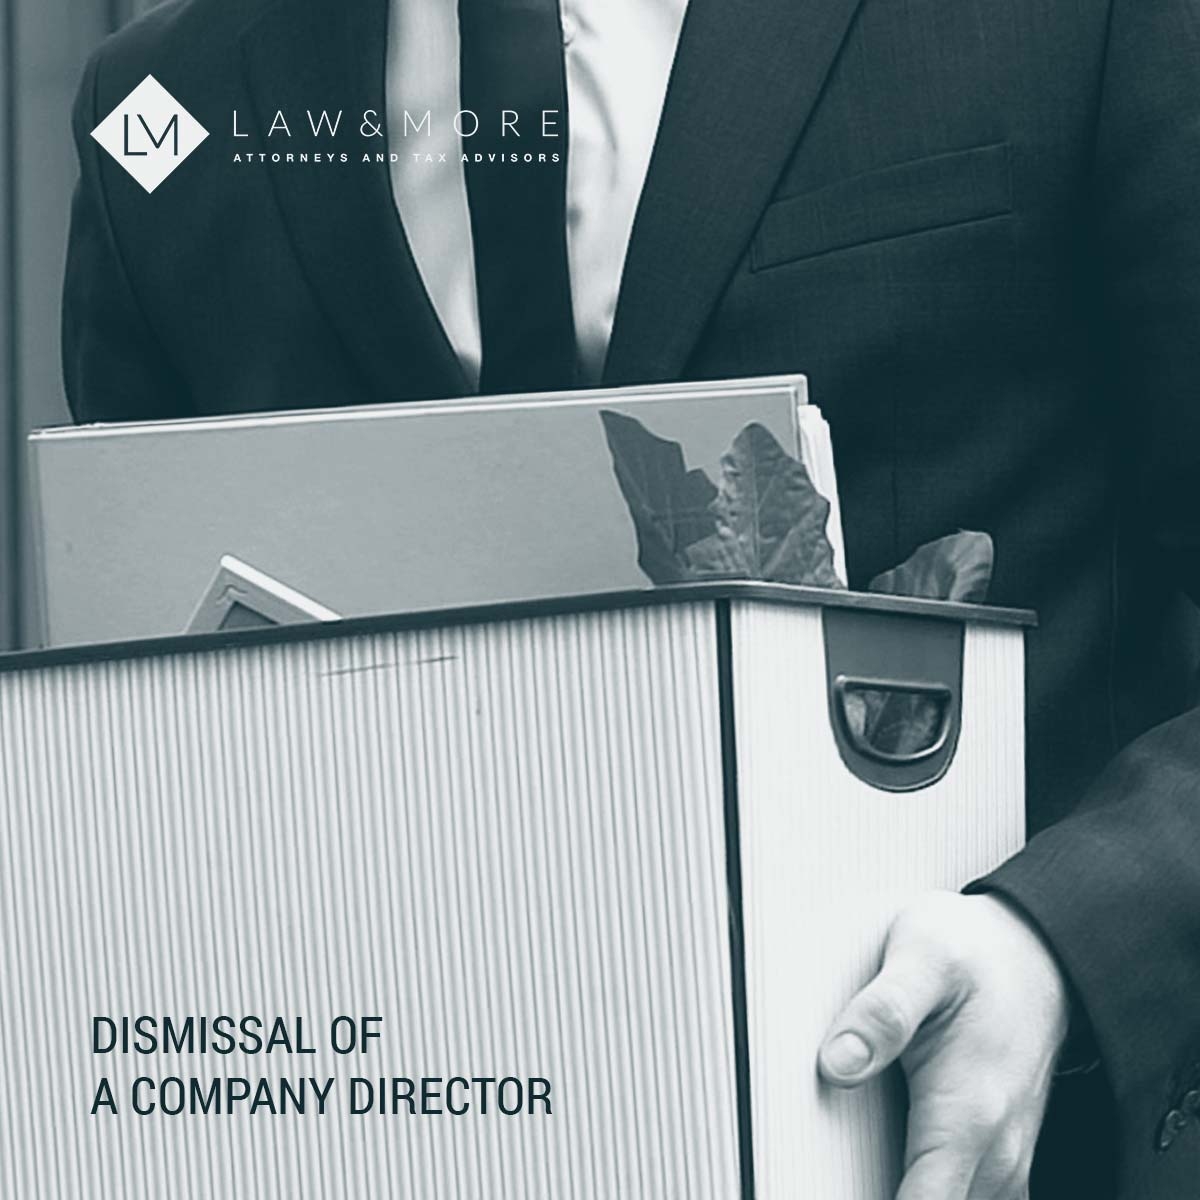 Dismissal of a company director image 1x1